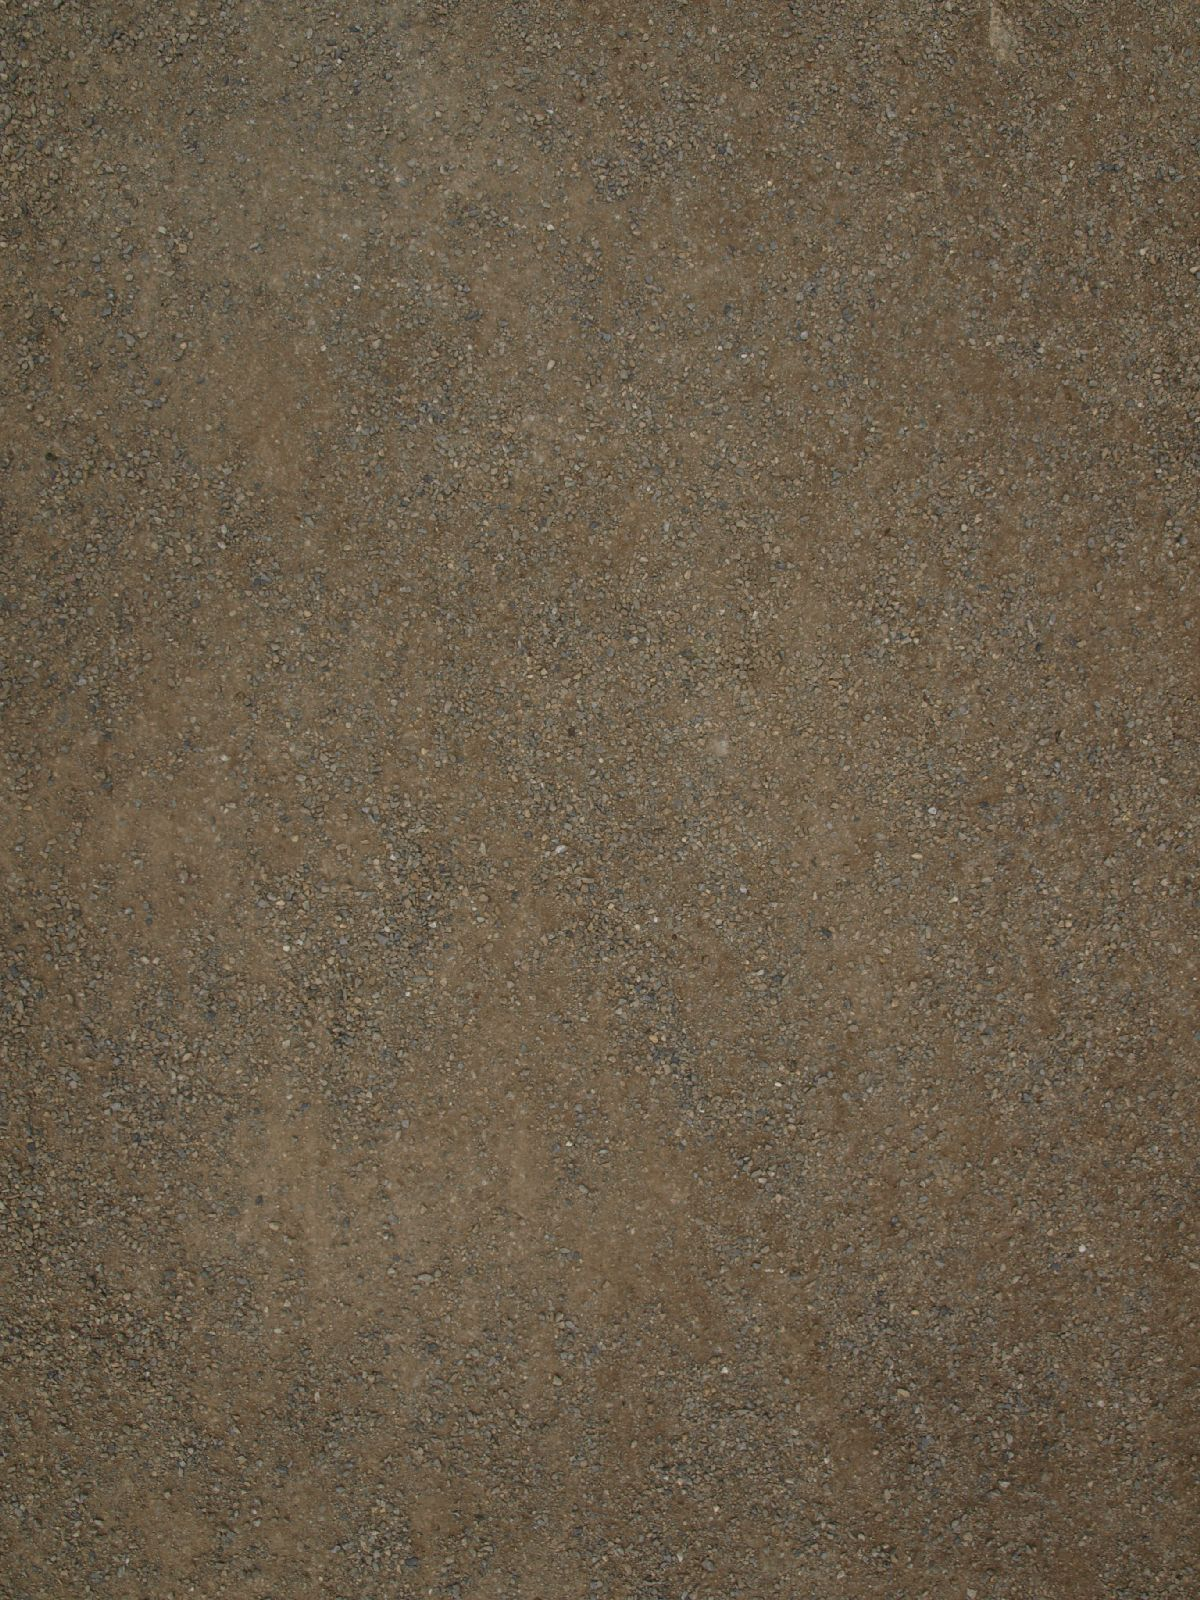 Ground-Nature_Texture_A_P4120841